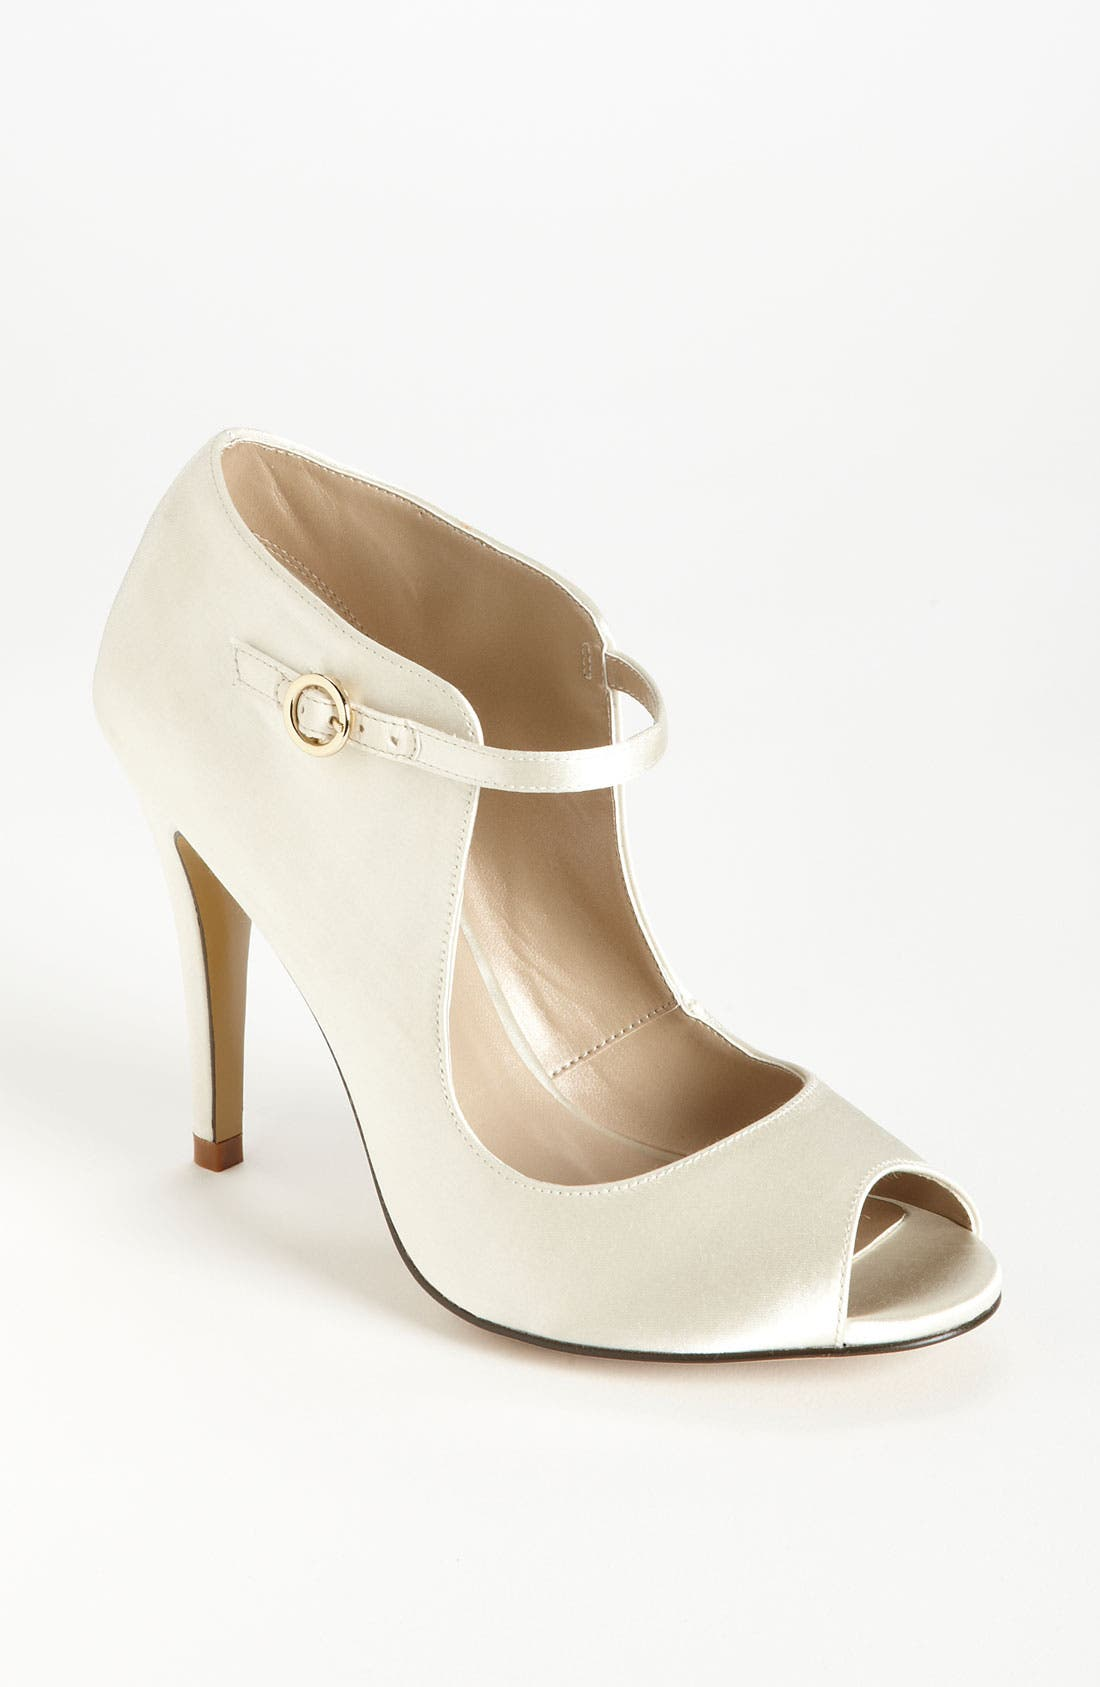 Alternate Image 1 Selected - BP. 'Charmed' Pump